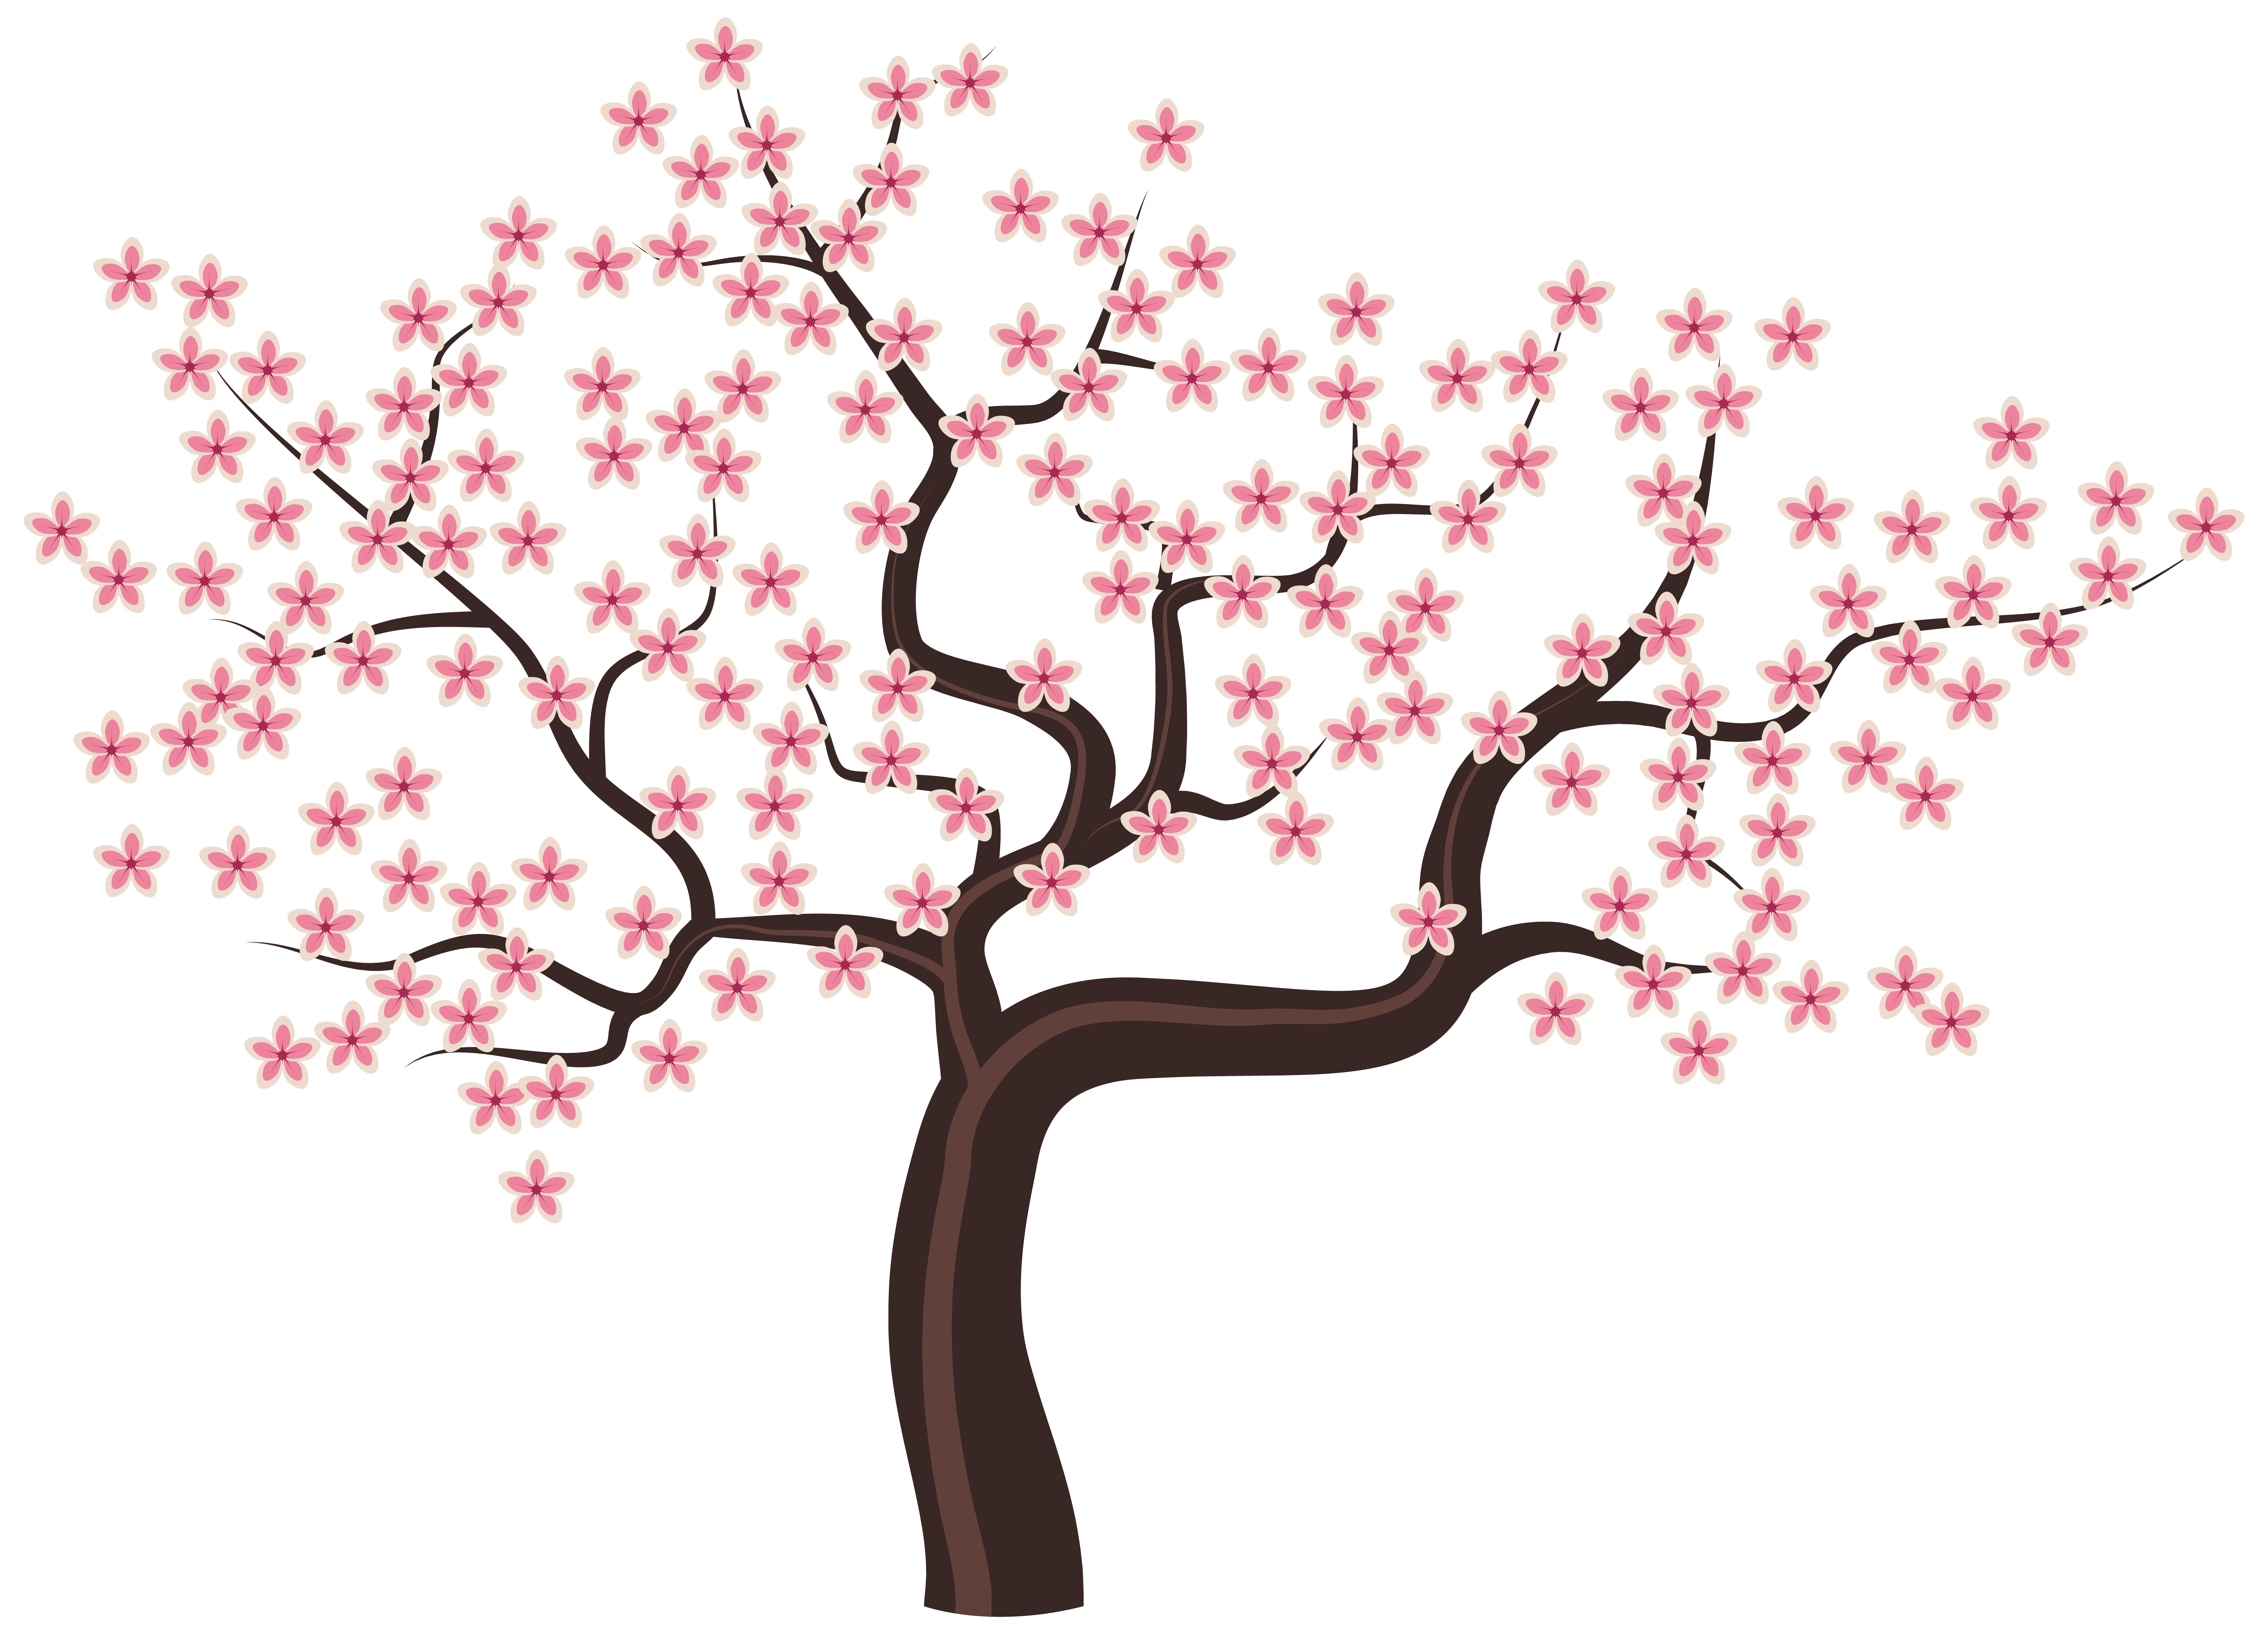 Flower trees png. Tree with flowers clipart